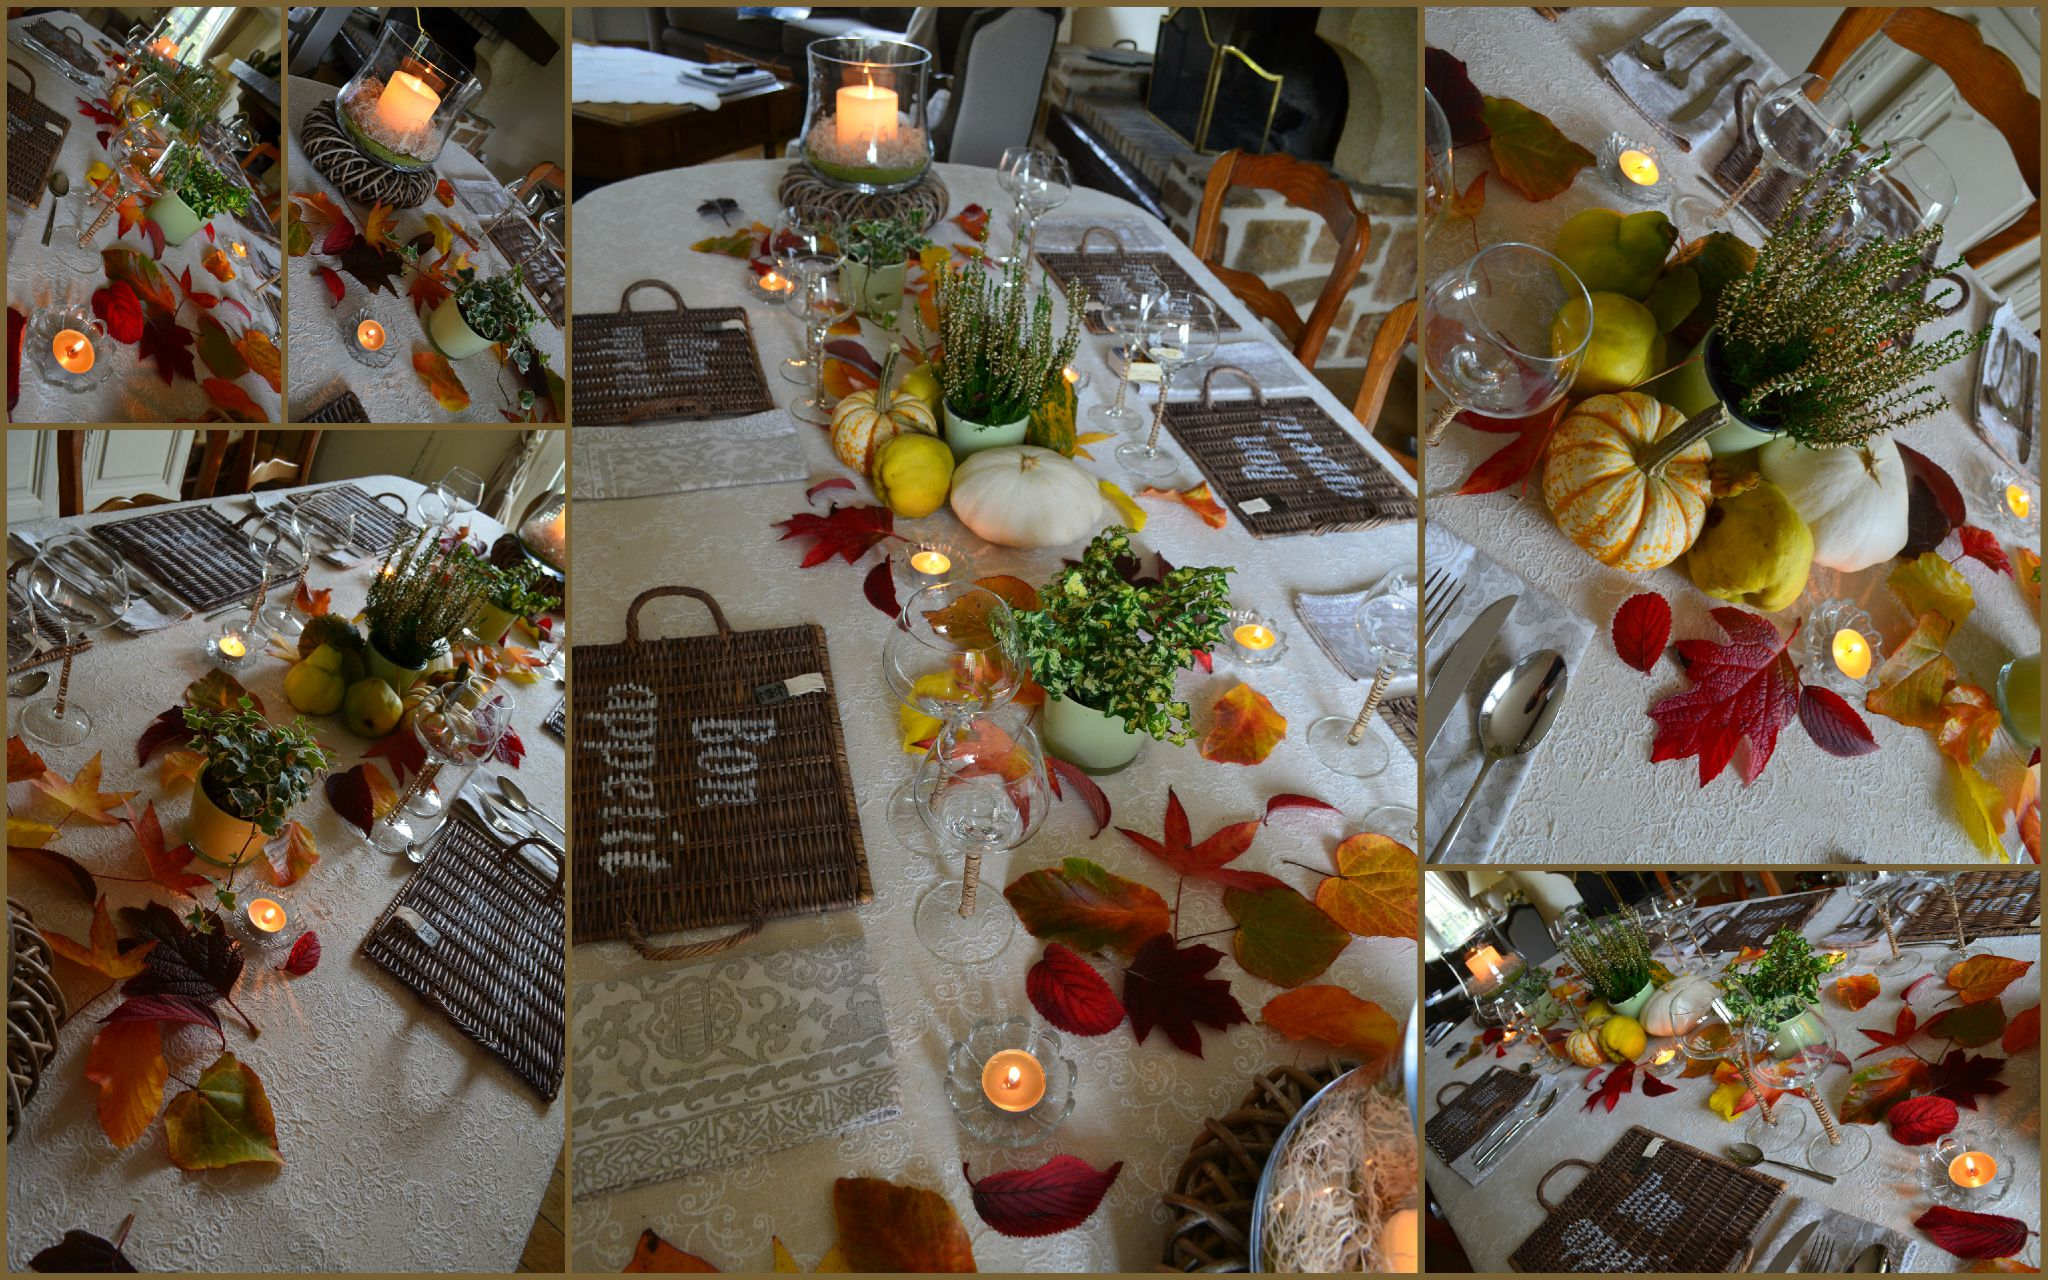 Pin Déco De Table Automne on Pinterest